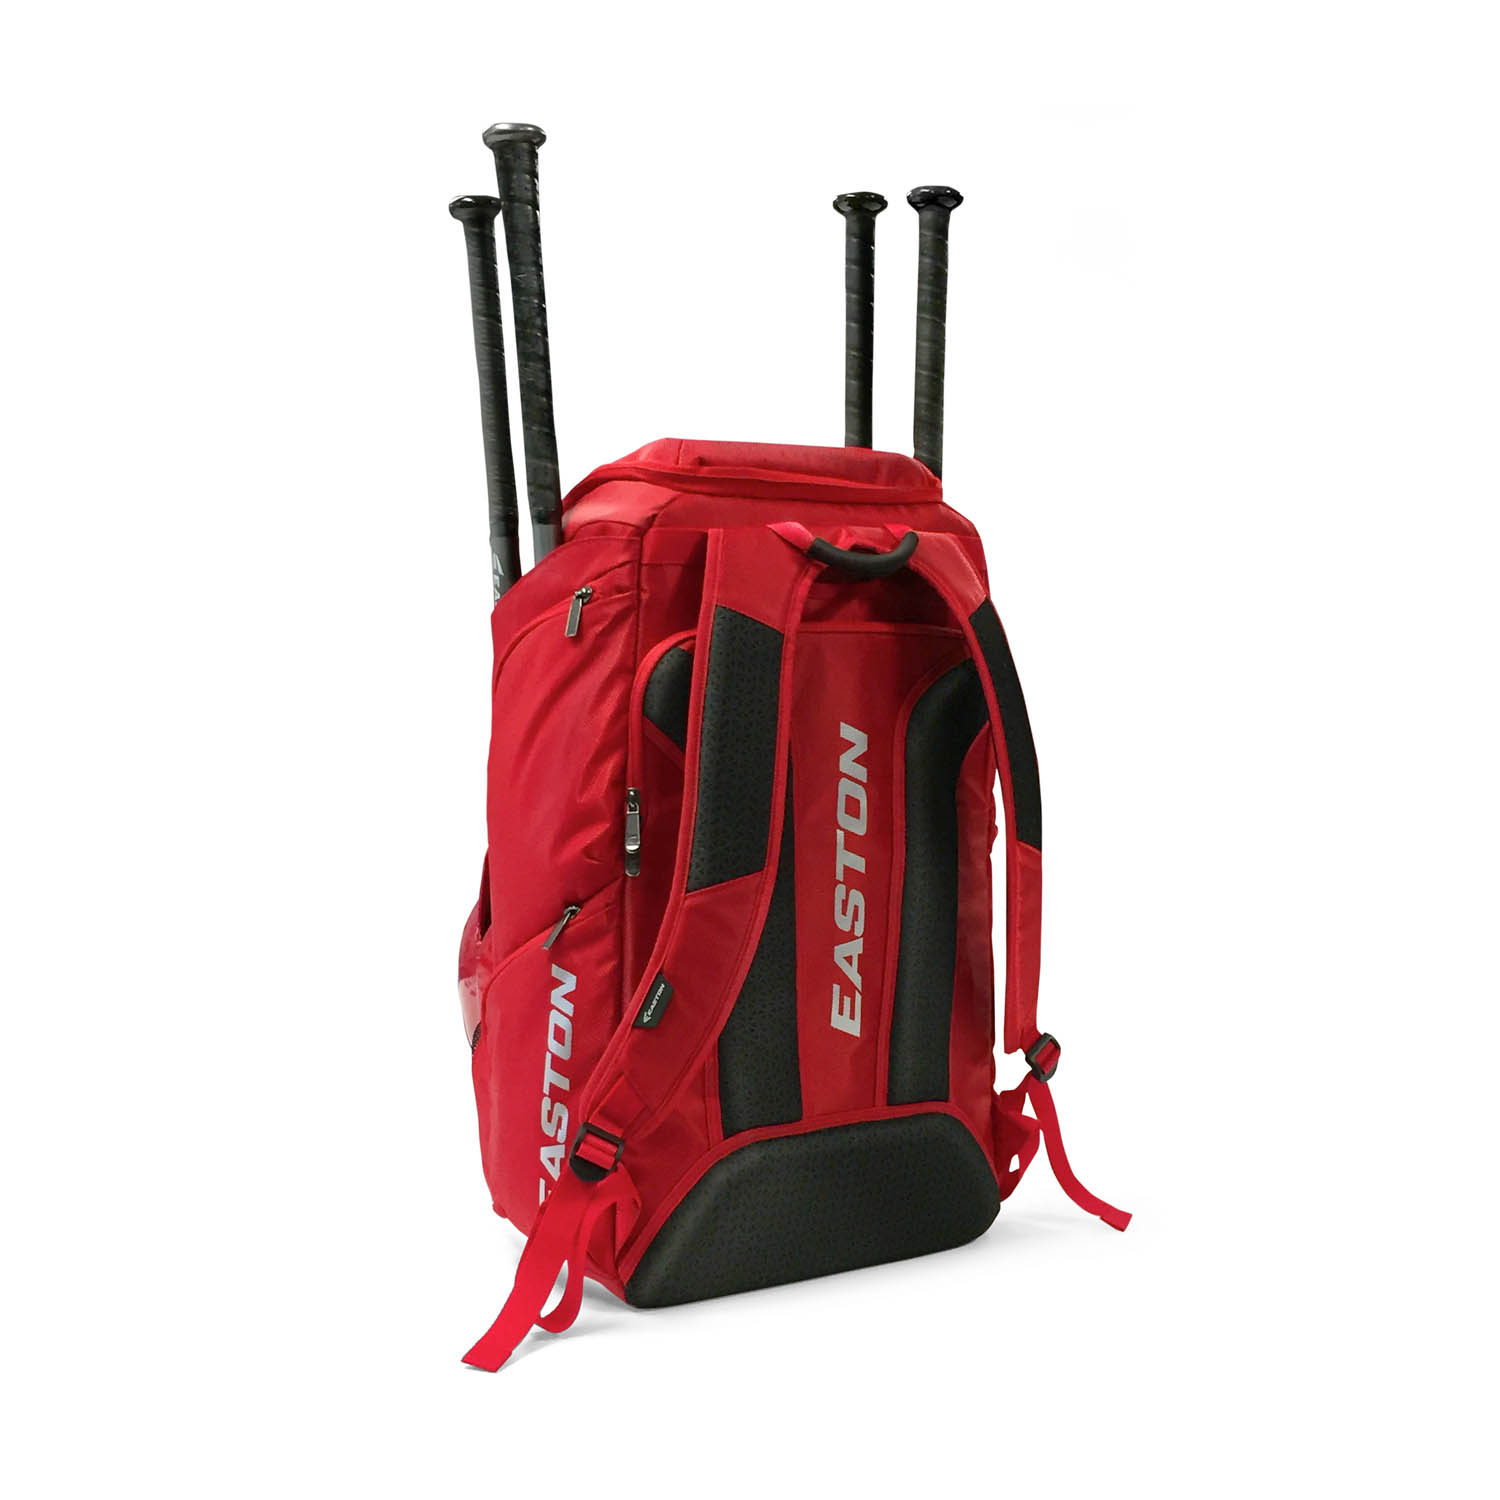 "New Easton Pro X Backpack Baseball Red Size: 24.5""H x 15""W x 11""D"